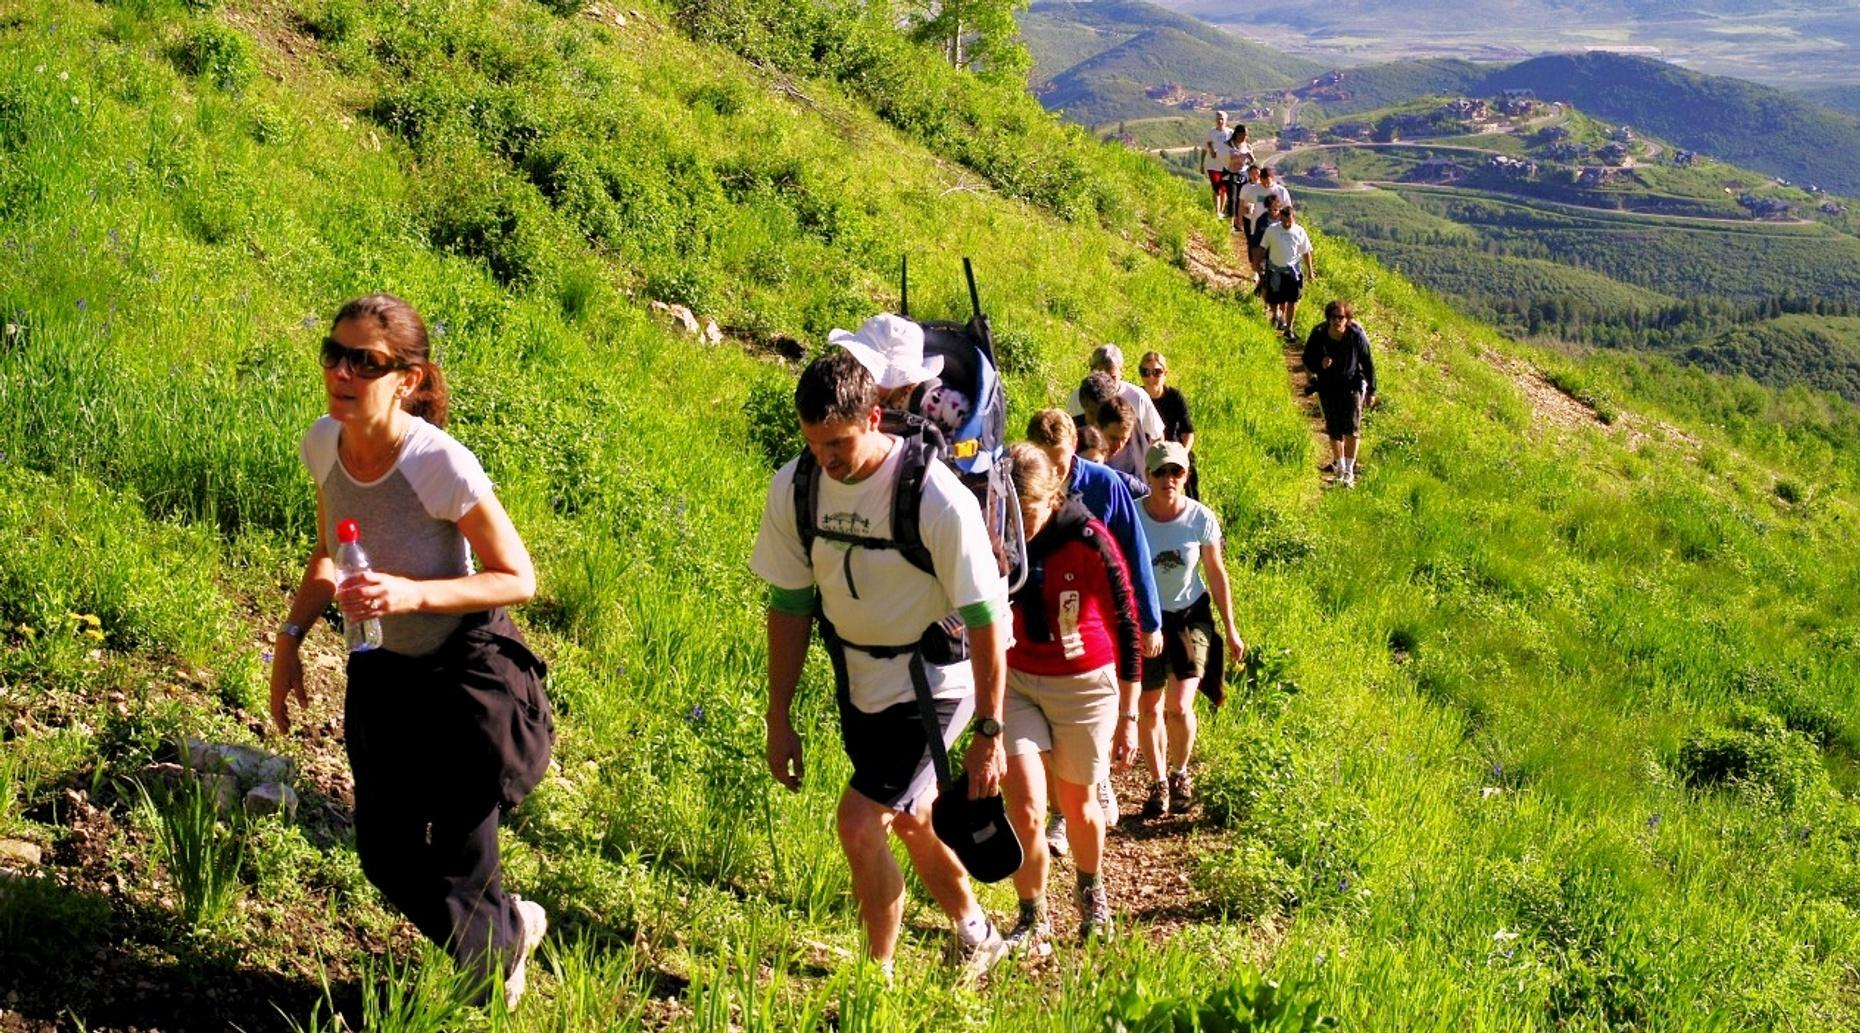 Cannabis Farm Tour and Hike in Rogue Valley